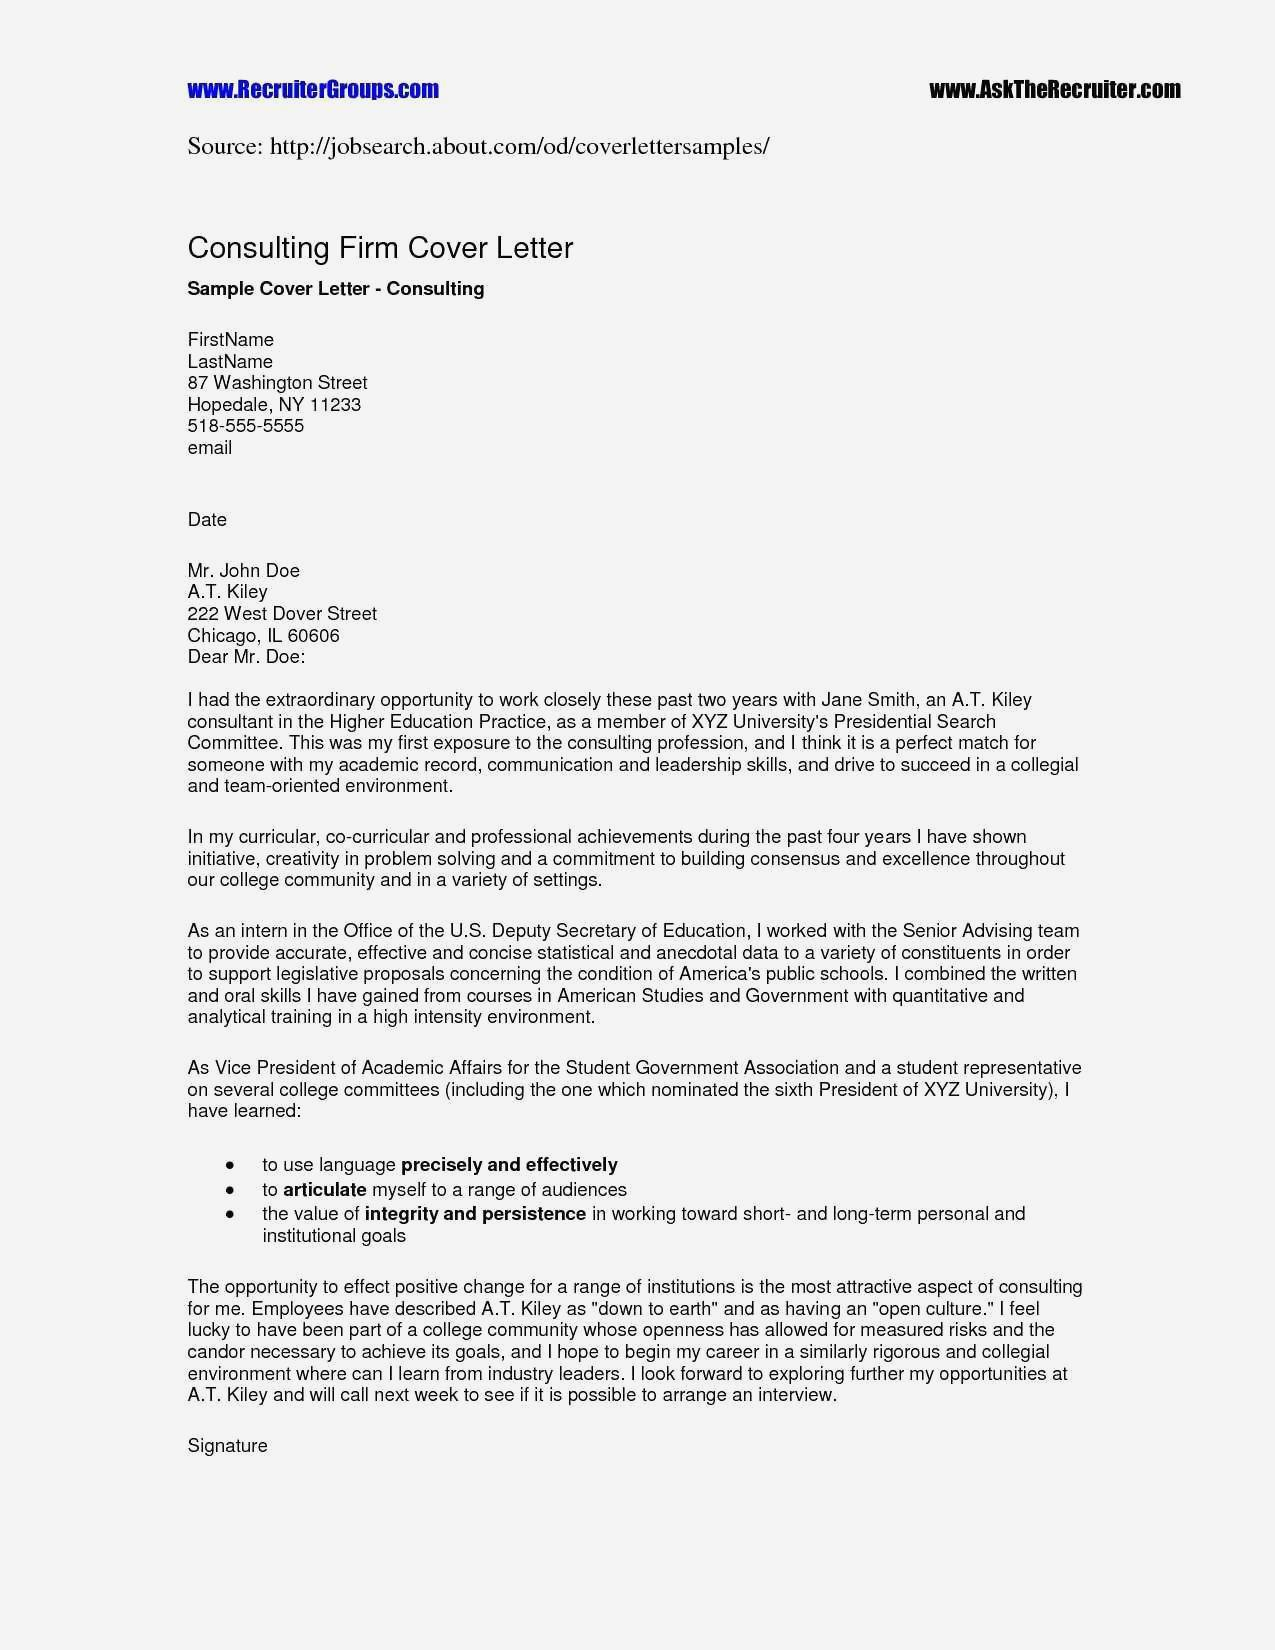 open office cover letter template example-Open Fice Schedule Template Fustar Concept Modeles Cv Open fice 8-d